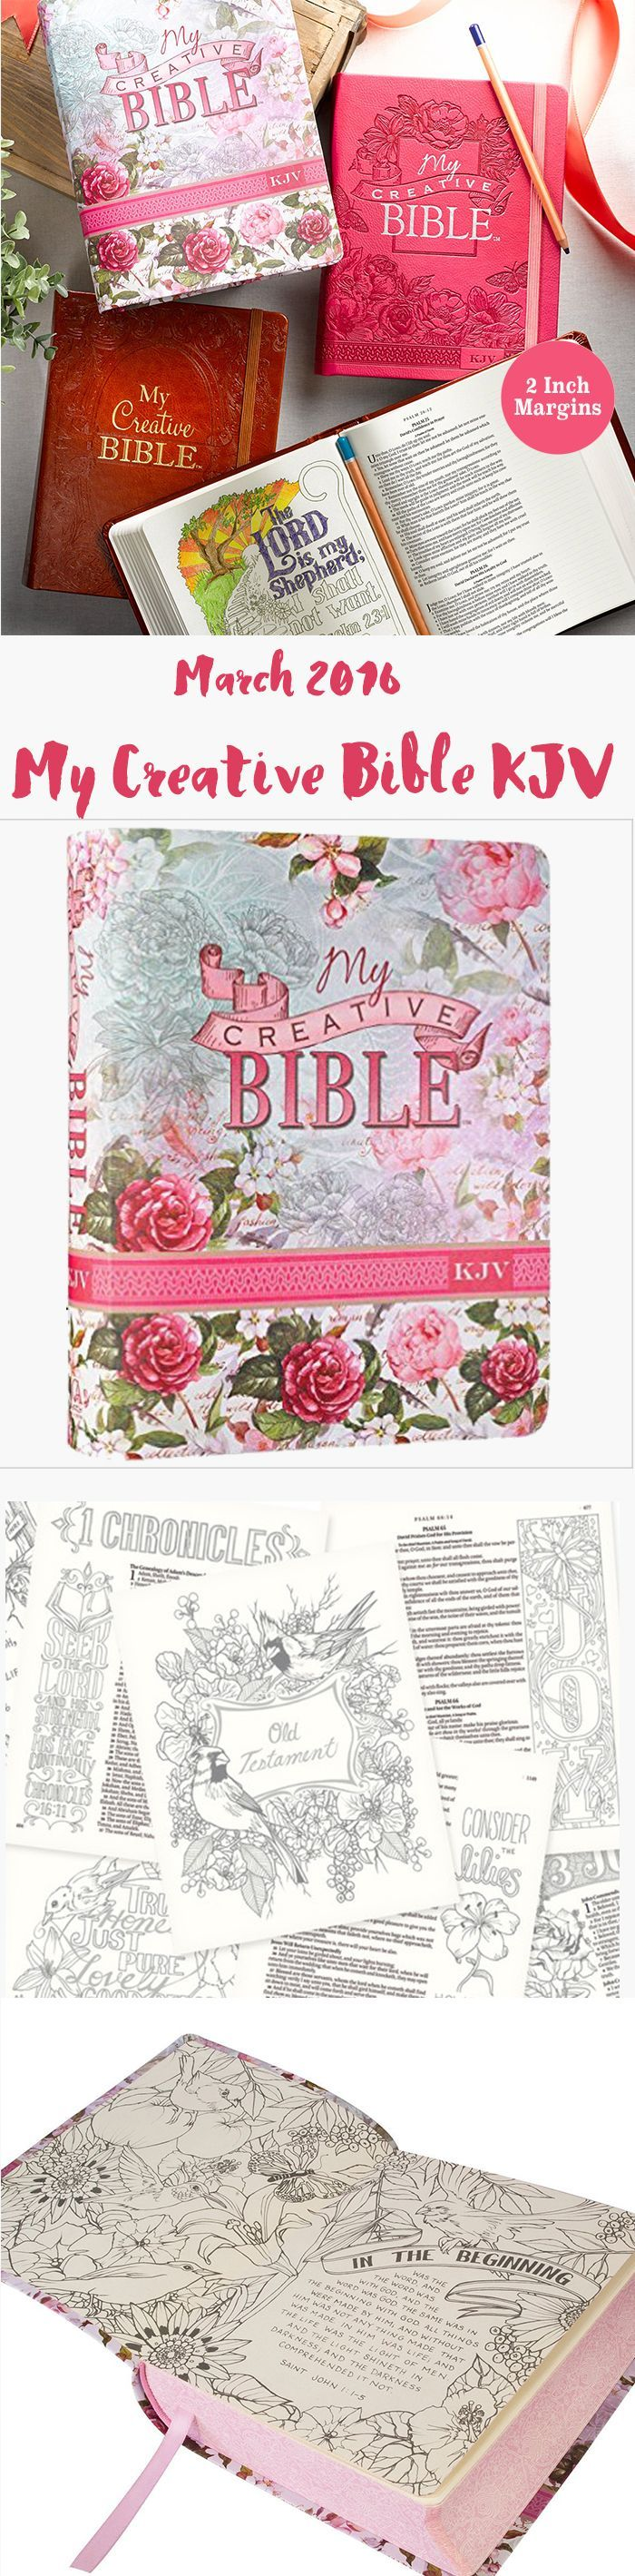 My Creative Bible KJV 400 illustrations to color. Special pre-order price.